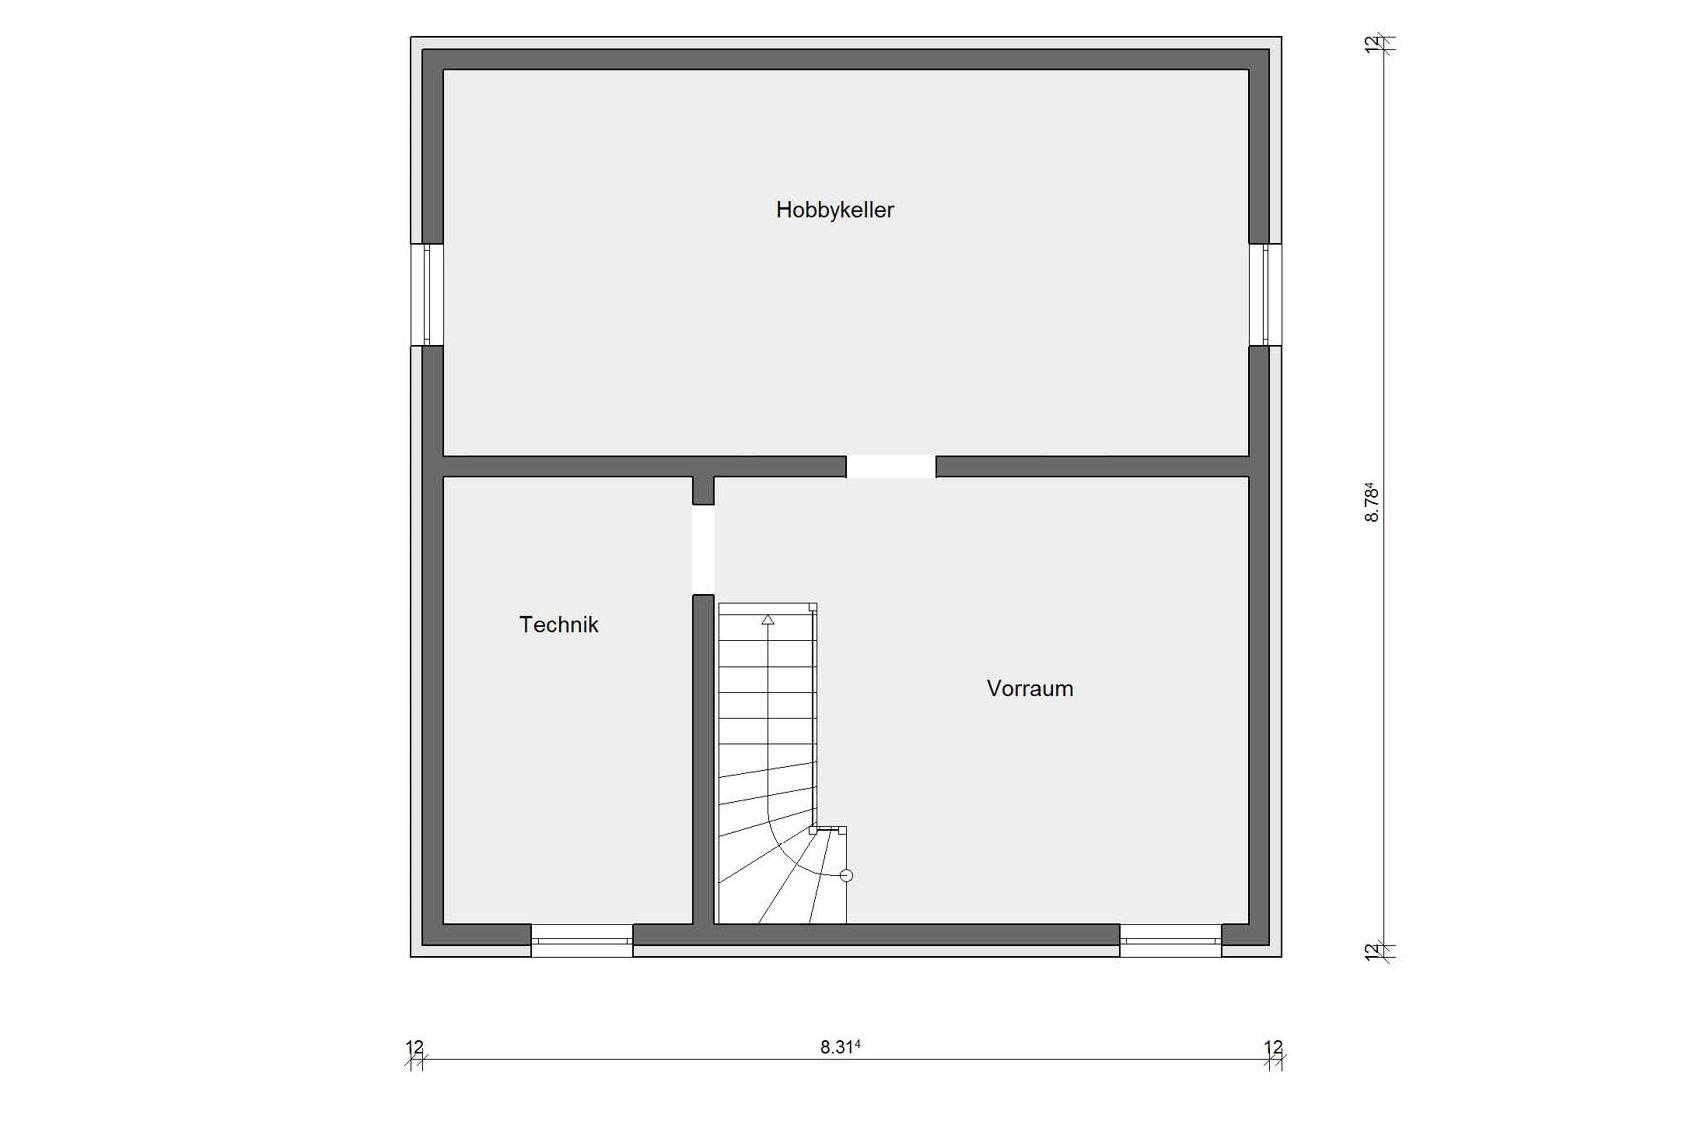 Basement floorplan E 15-127.9 Modern family house